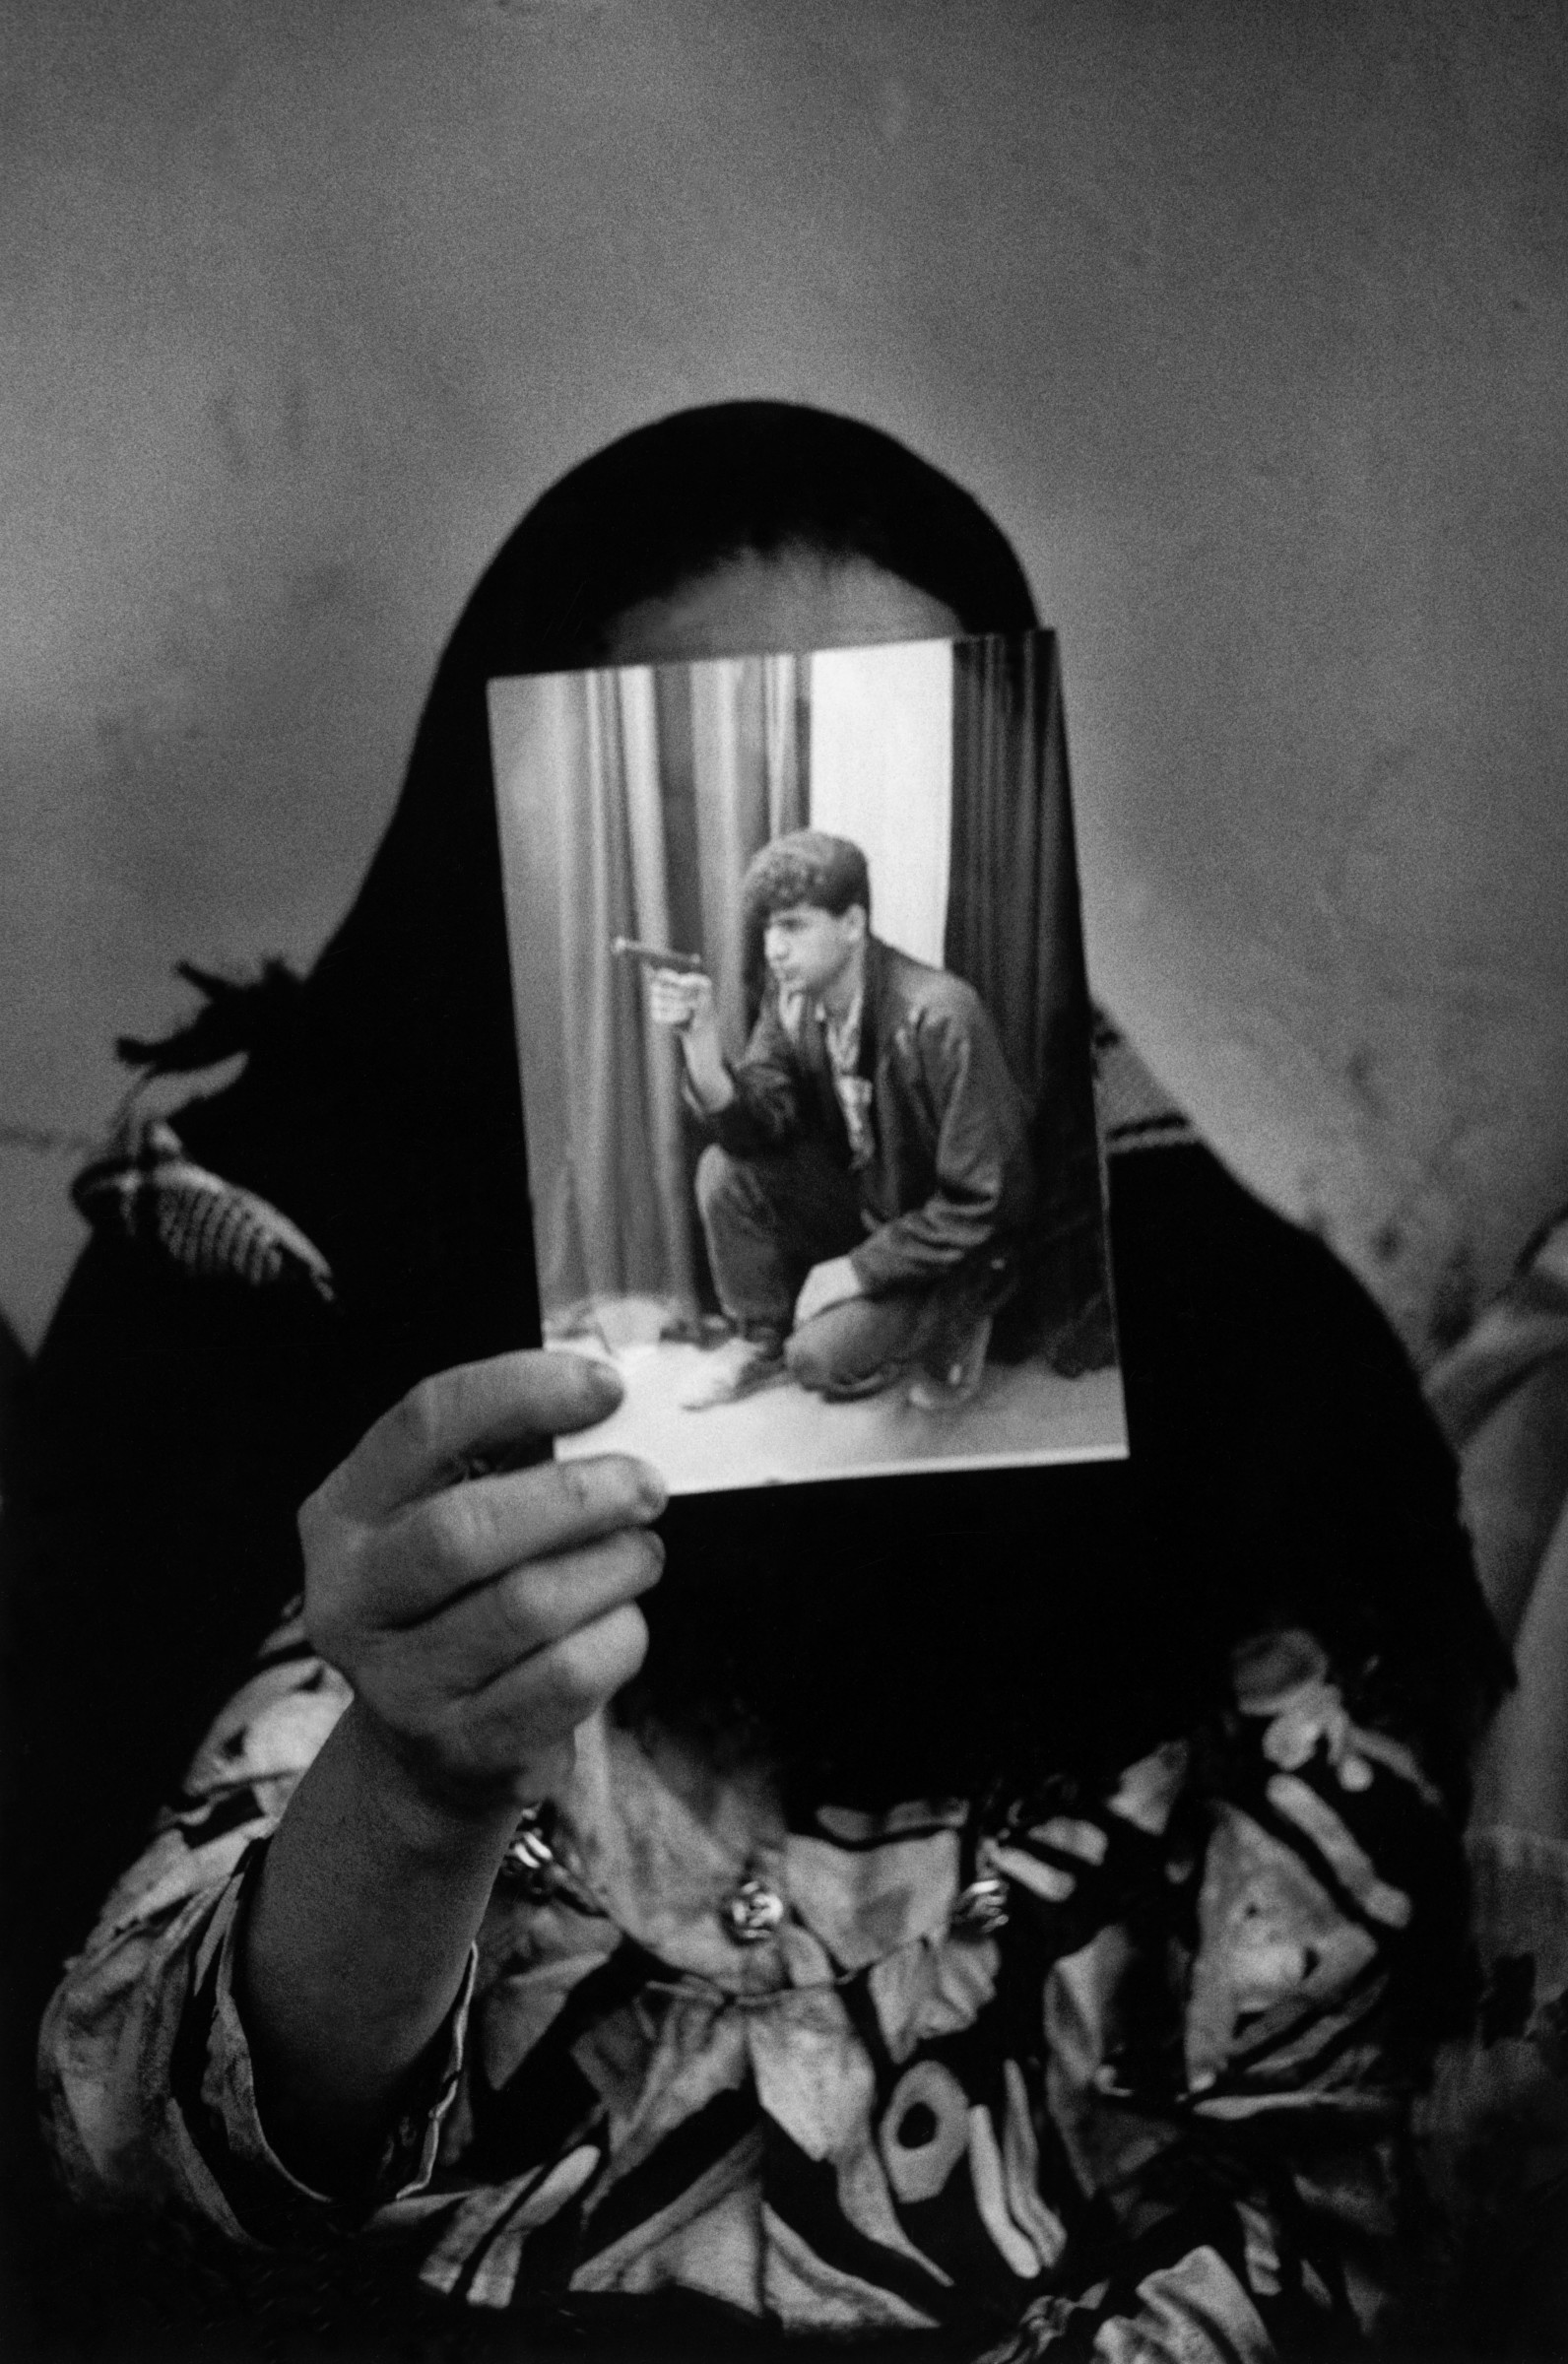 """<span class=""""link fancybox-details-link""""><a href=""""/artists/110-larry-towell/works/35053-larry-towell-shati-refugee-camp-gaza-1993/"""">View Detail Page</a></span><div class=""""artist""""><strong>Larry Towell</strong></div> b. 1953 <div class=""""title""""><em>Shati refugee camp, Gaza</em>, 1993</div> <div class=""""signed_and_dated"""">Signed, titled, and dated, in pencil, au verso<br /> Printed in 2002</div> <div class=""""medium"""">Gelatin silver print</div> <div class=""""dimensions"""">18 x 12 inch (45.72 x 30.48 cm) image<br /> 19 ¾ x 15 ¾ inch (50.17 x 40.01 cm) paper</div> <div class=""""edition_details""""></div><div class=""""copyright_line"""">© Larry Towell / Magnum Photos</div>"""